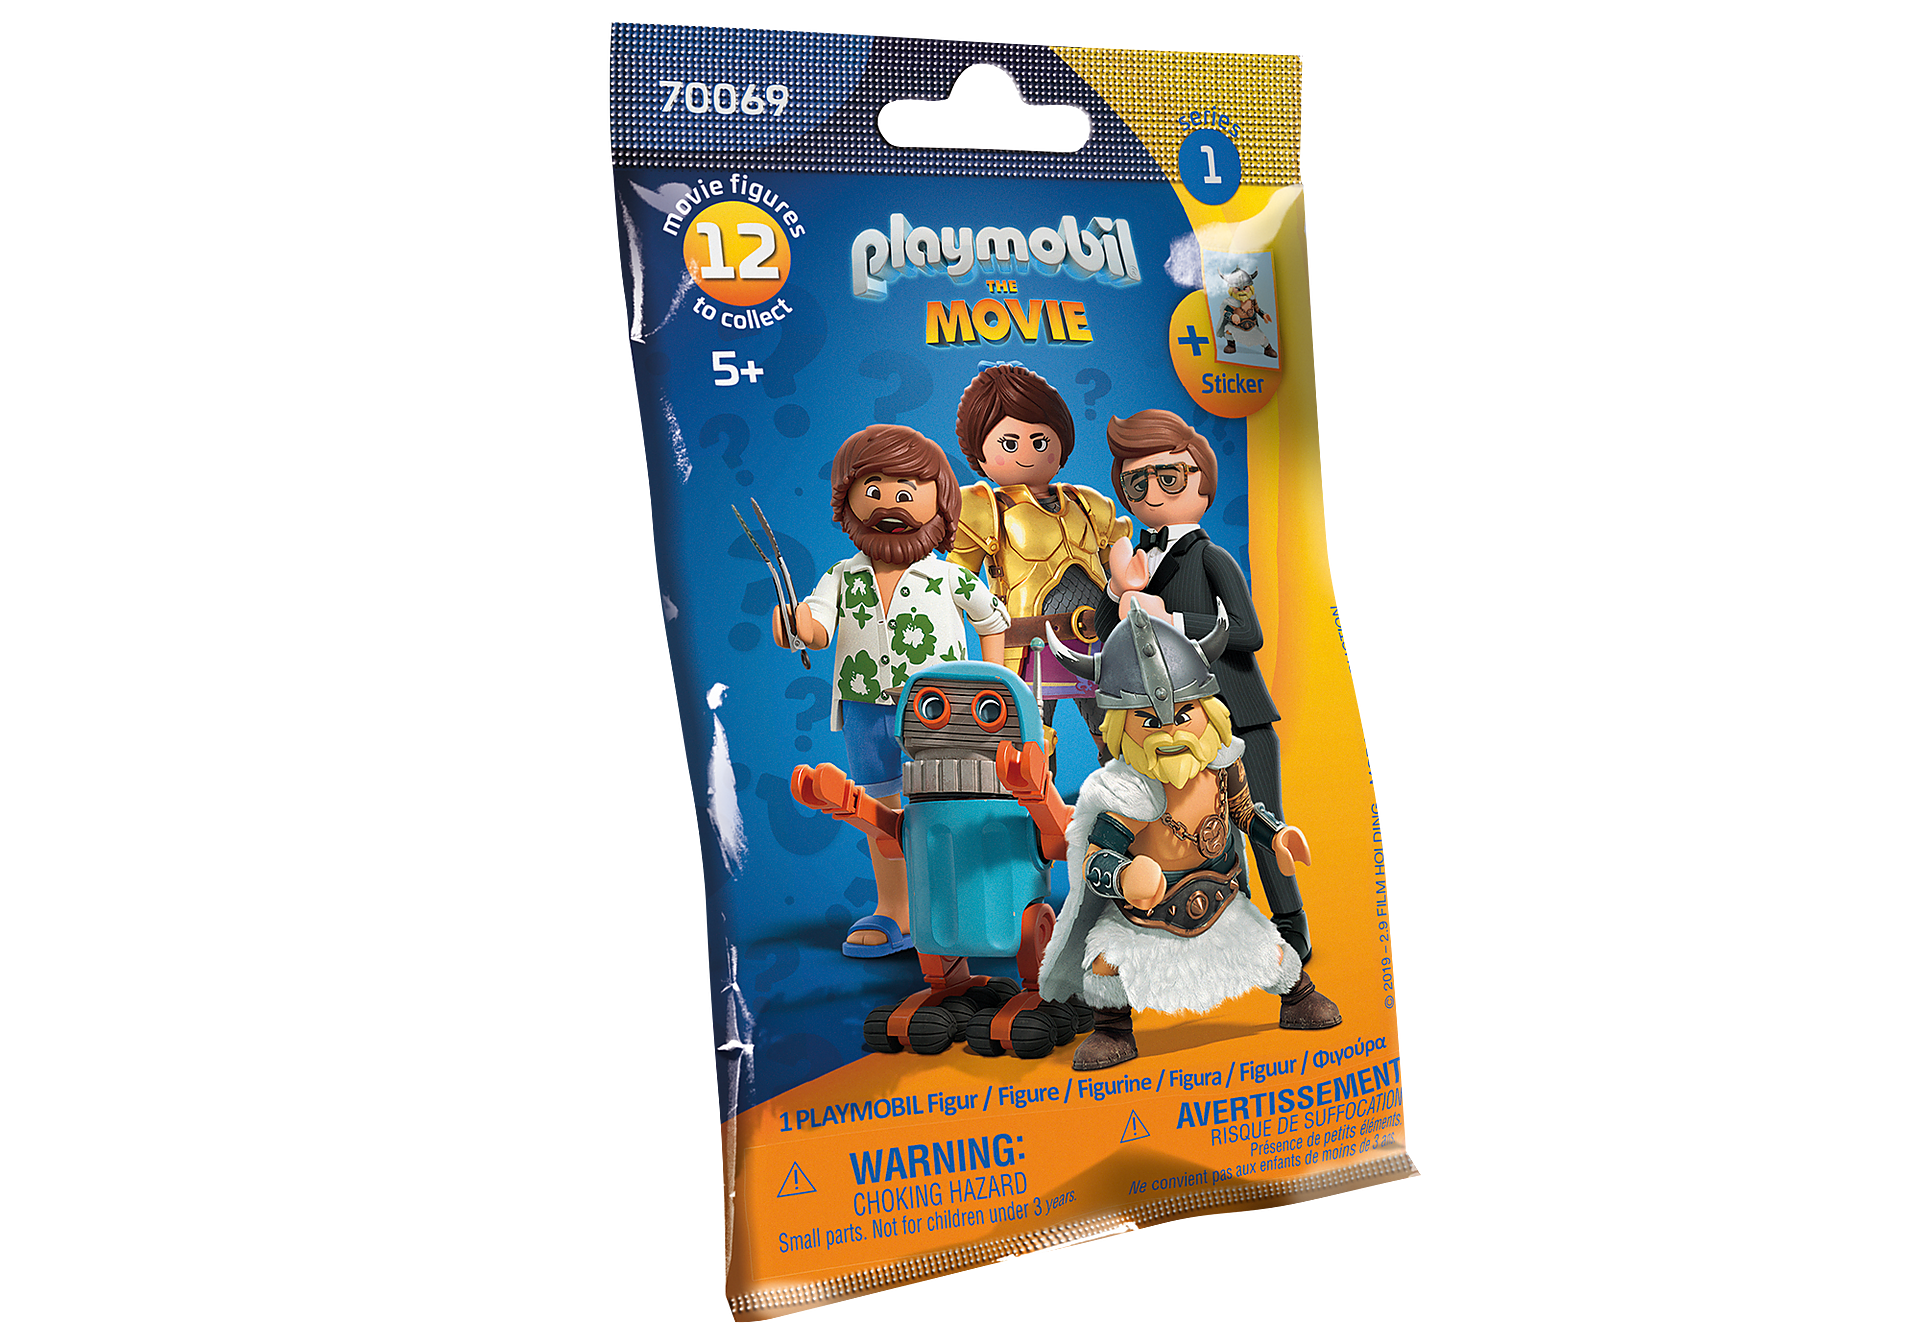 70069 PLAYMOBIL: THE MOVIE Figures (Series 1) zoom image2